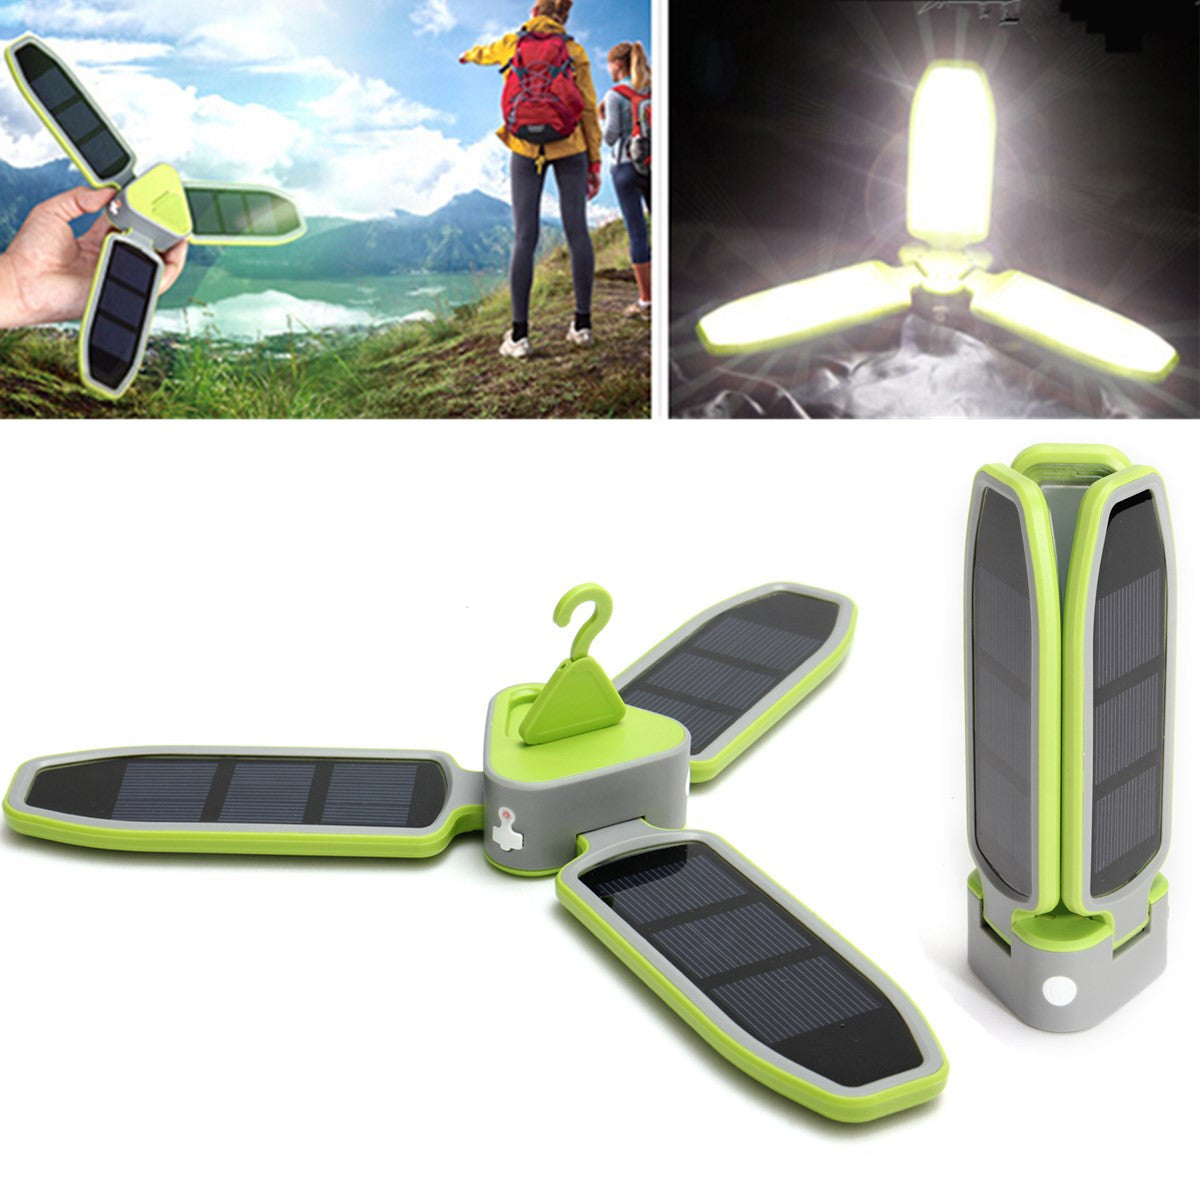 Folding LED Camping Tent Light Solar Power Hanging Outdoor Camping Hiking Lamp